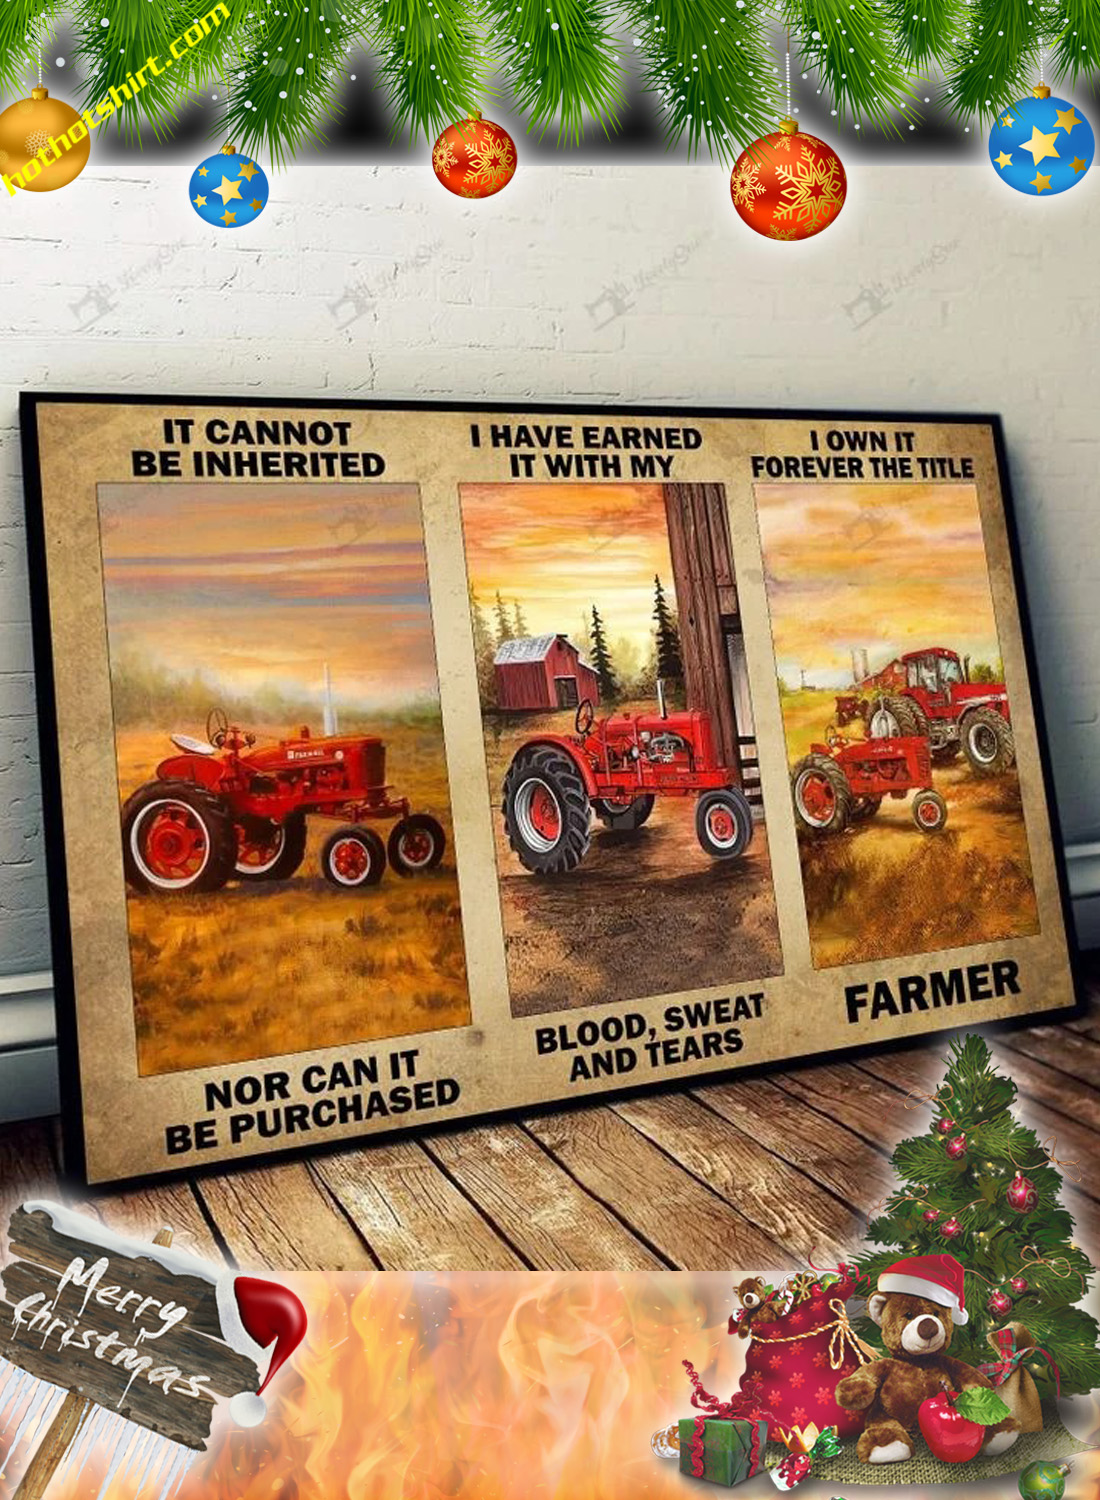 Red tractor It cannot be inherited nor can it be purchased poster 1